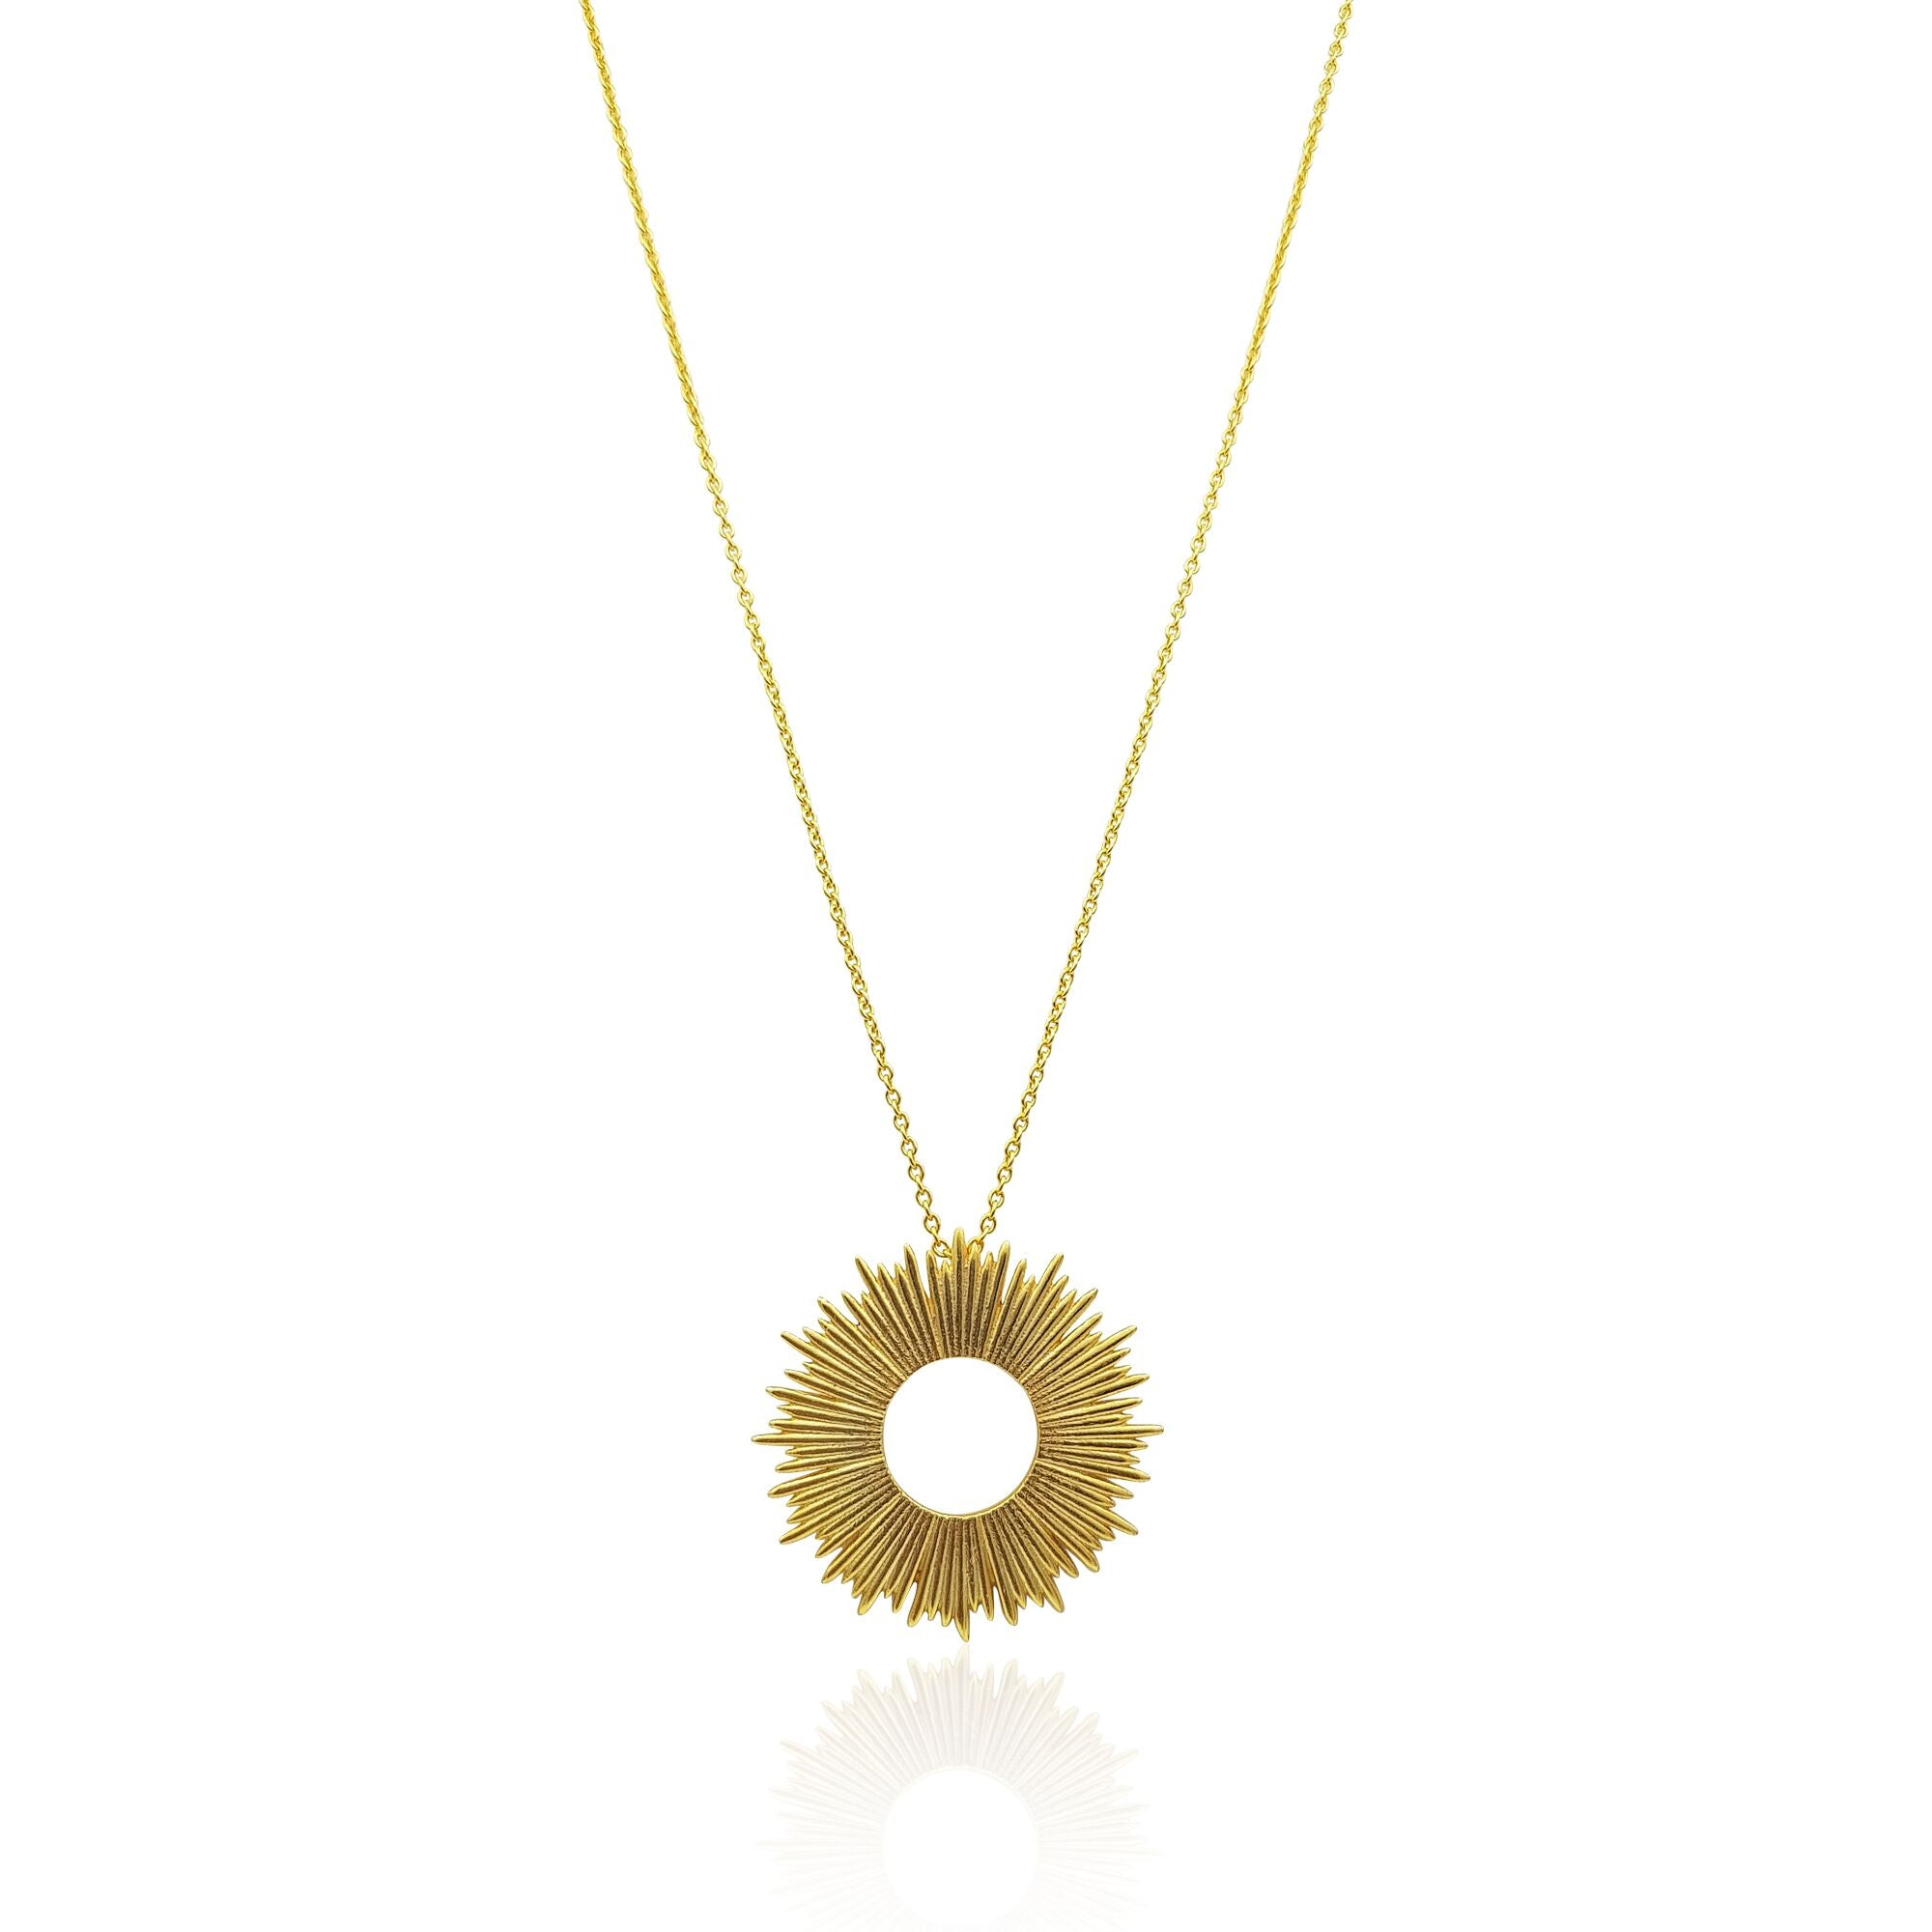 eliza-bautista-gold-radial-sunburst-necklace-l